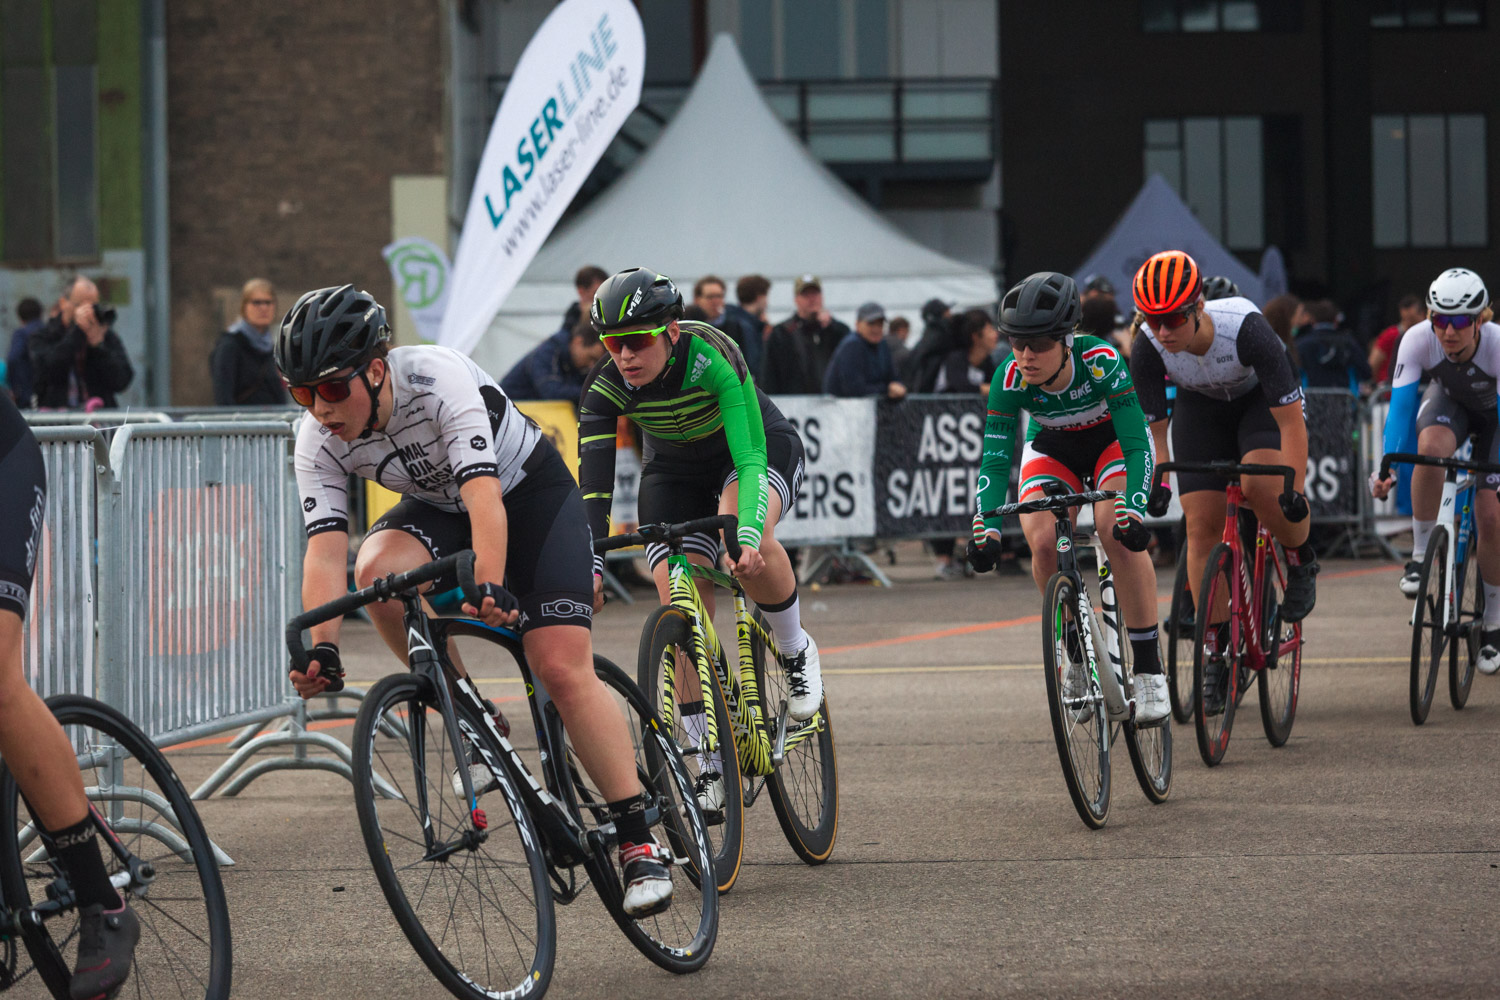 8barcrit 2018 women fixed gear race 14 - Schnell, schneller, 8bar crit 2018 - der Rennbericht!